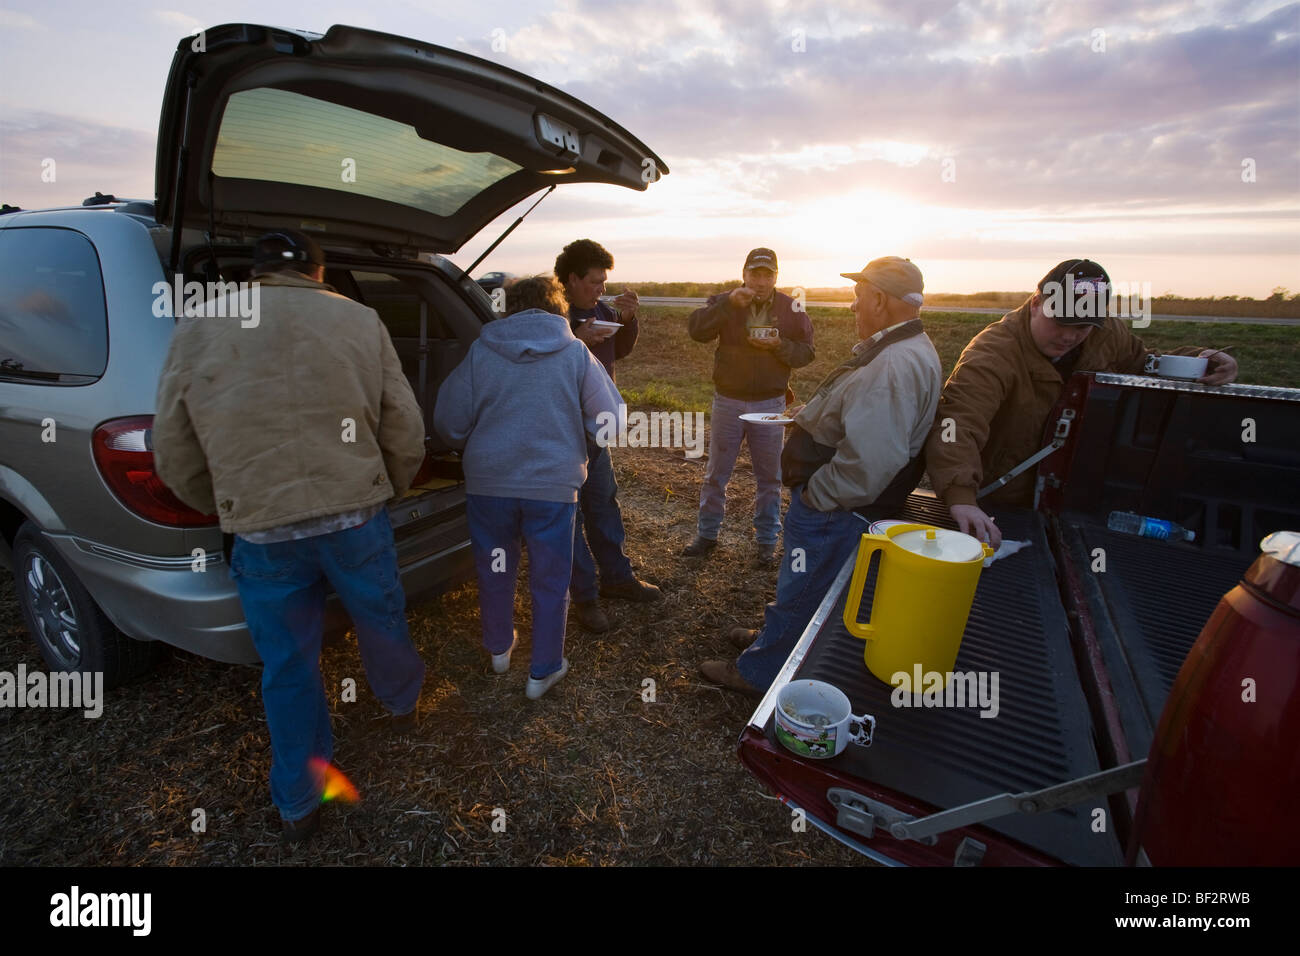 A farm family shares a meal together in the field during the long days of Autumn harvest / near Northland, Minnesota, - Stock Image